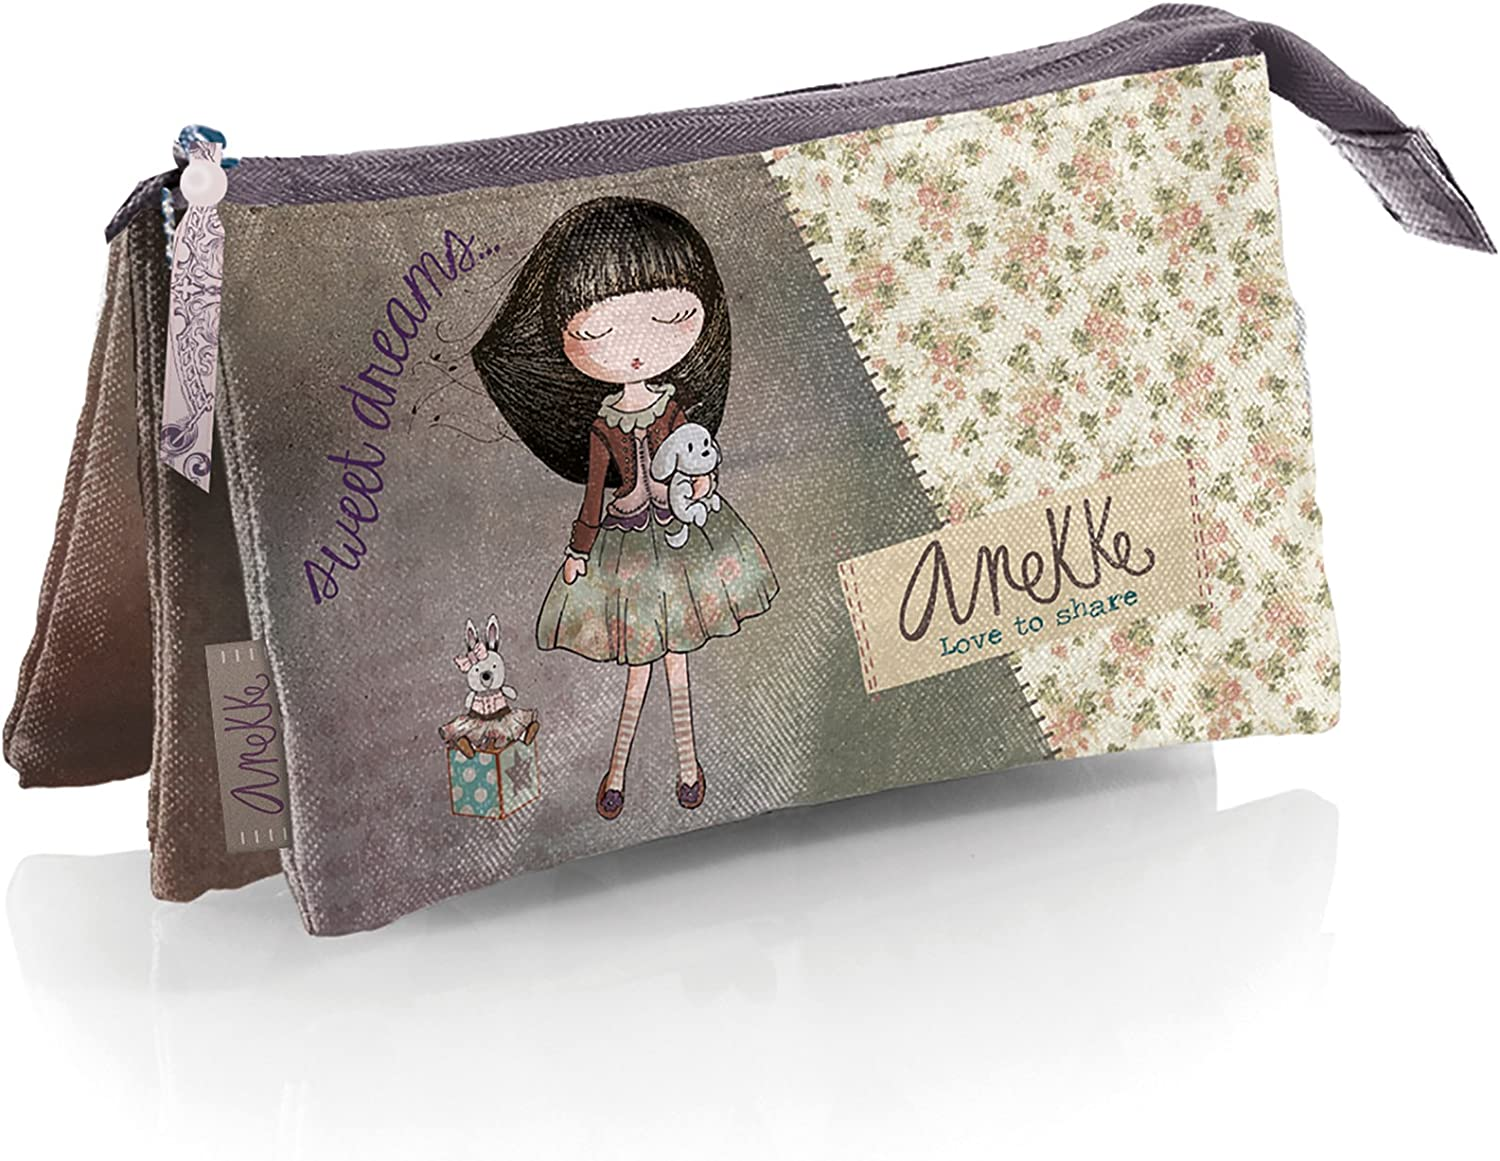 Anekke Cozy - Portatodo triple, 225 x 115 x 20 mm, multicolor: Amazon.es: Ropa y accesorios